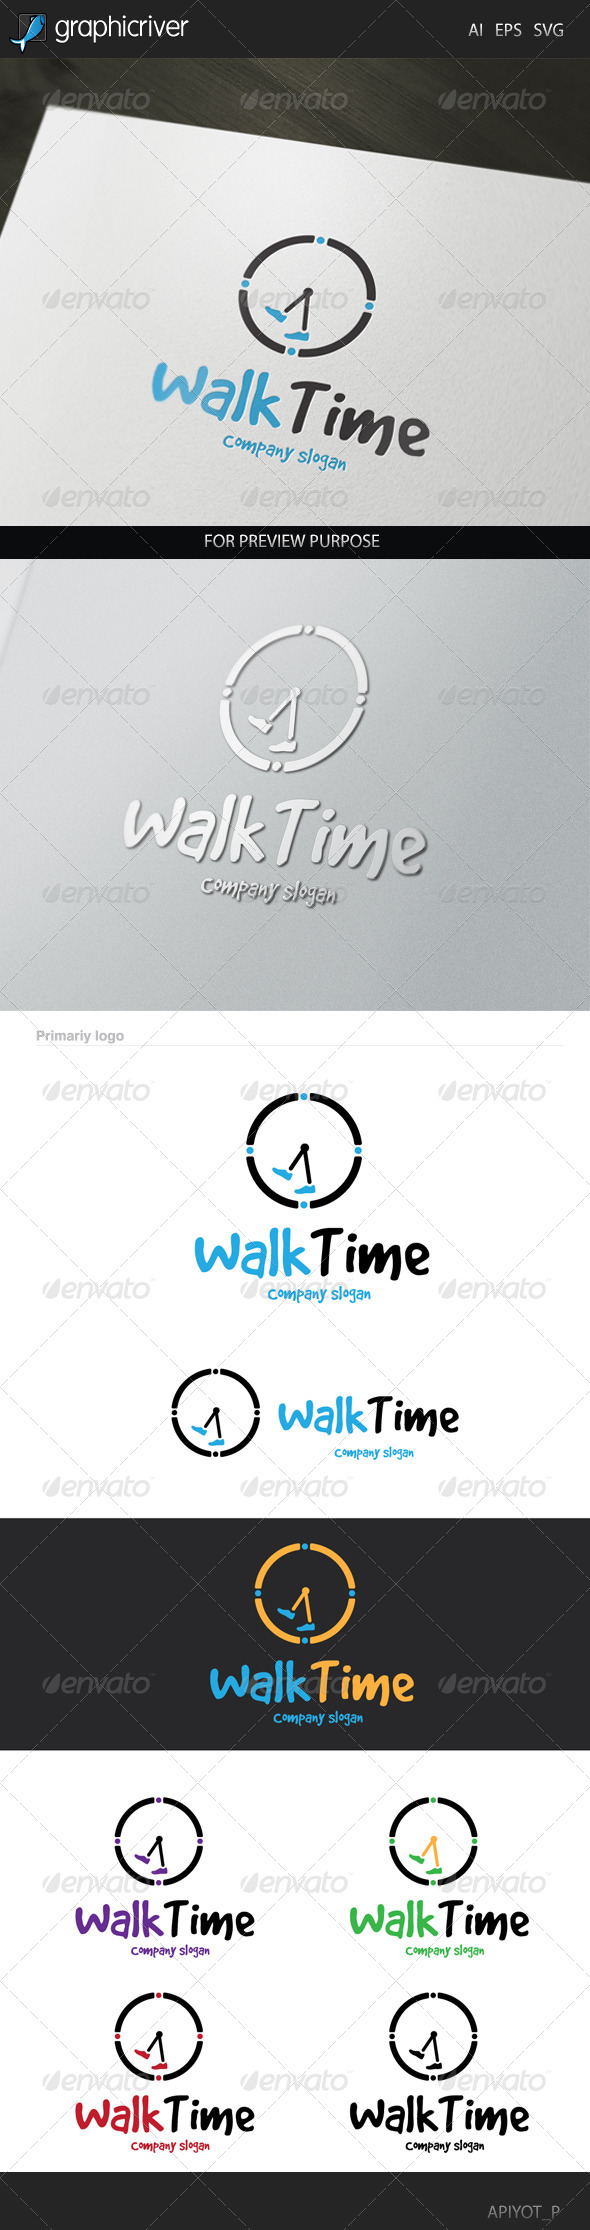 GraphicRiver Walk Time Logo 8340490